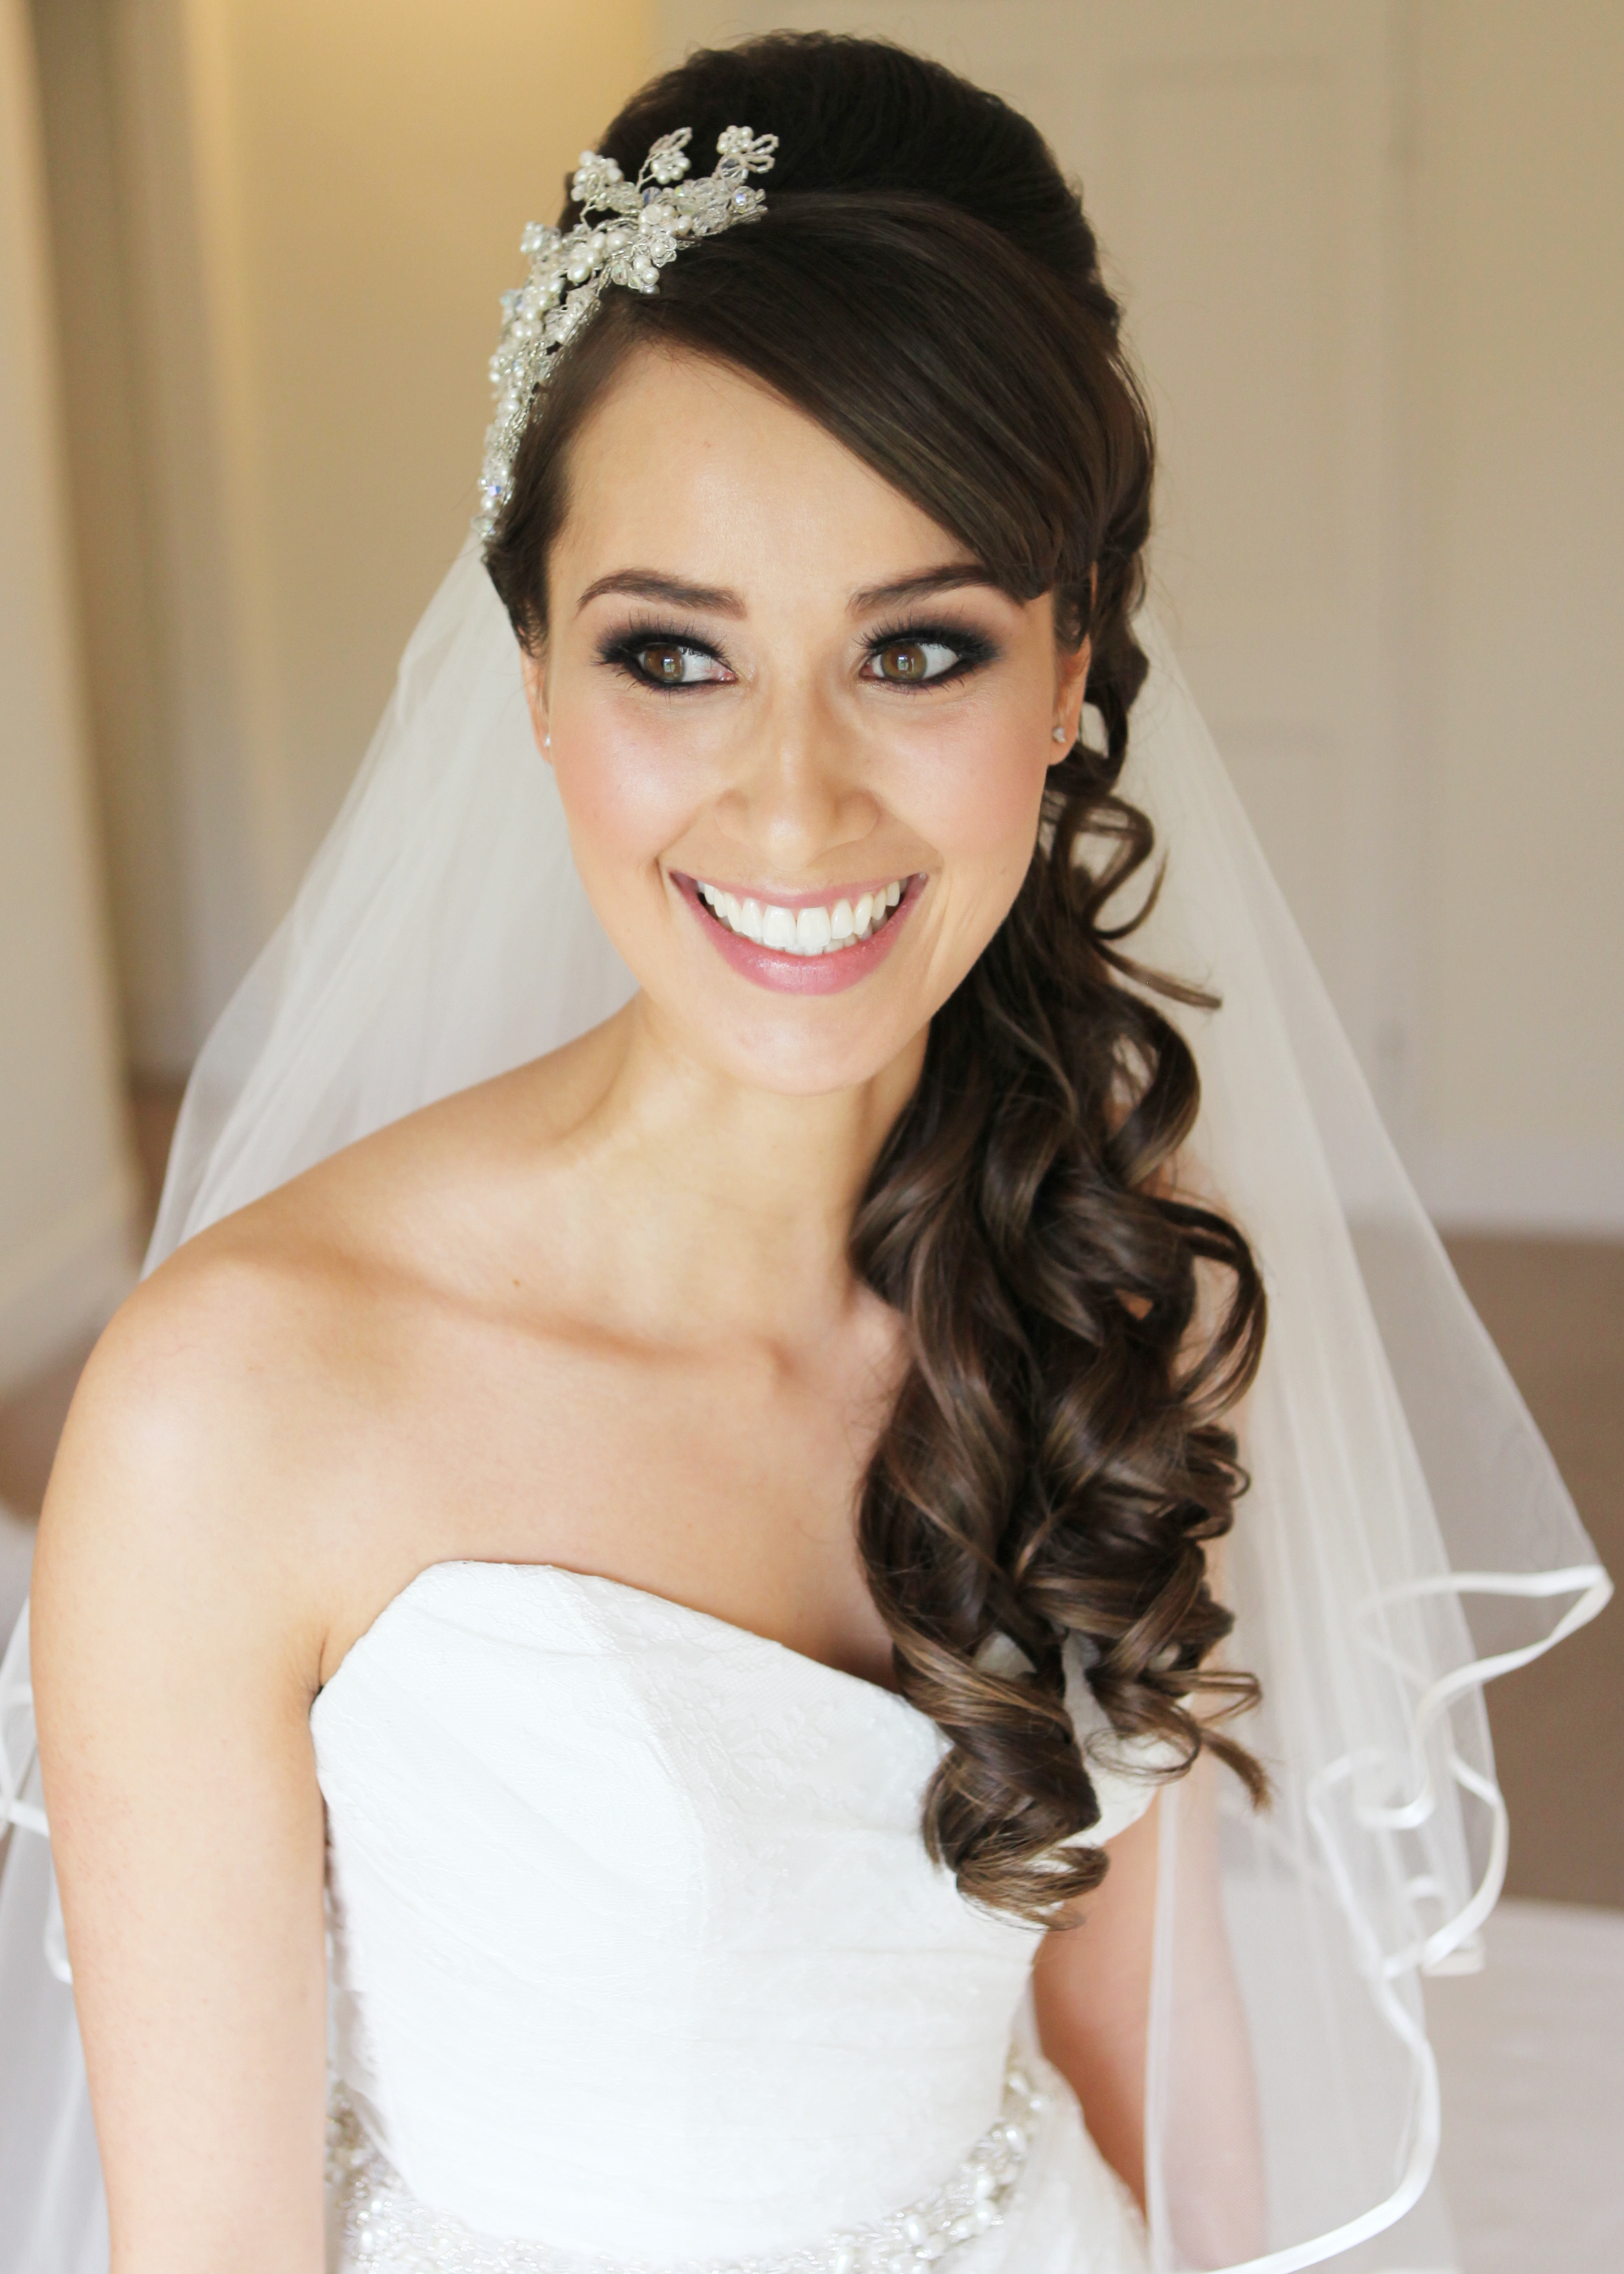 wedding hair and make up in cornwall - ideal for london brides